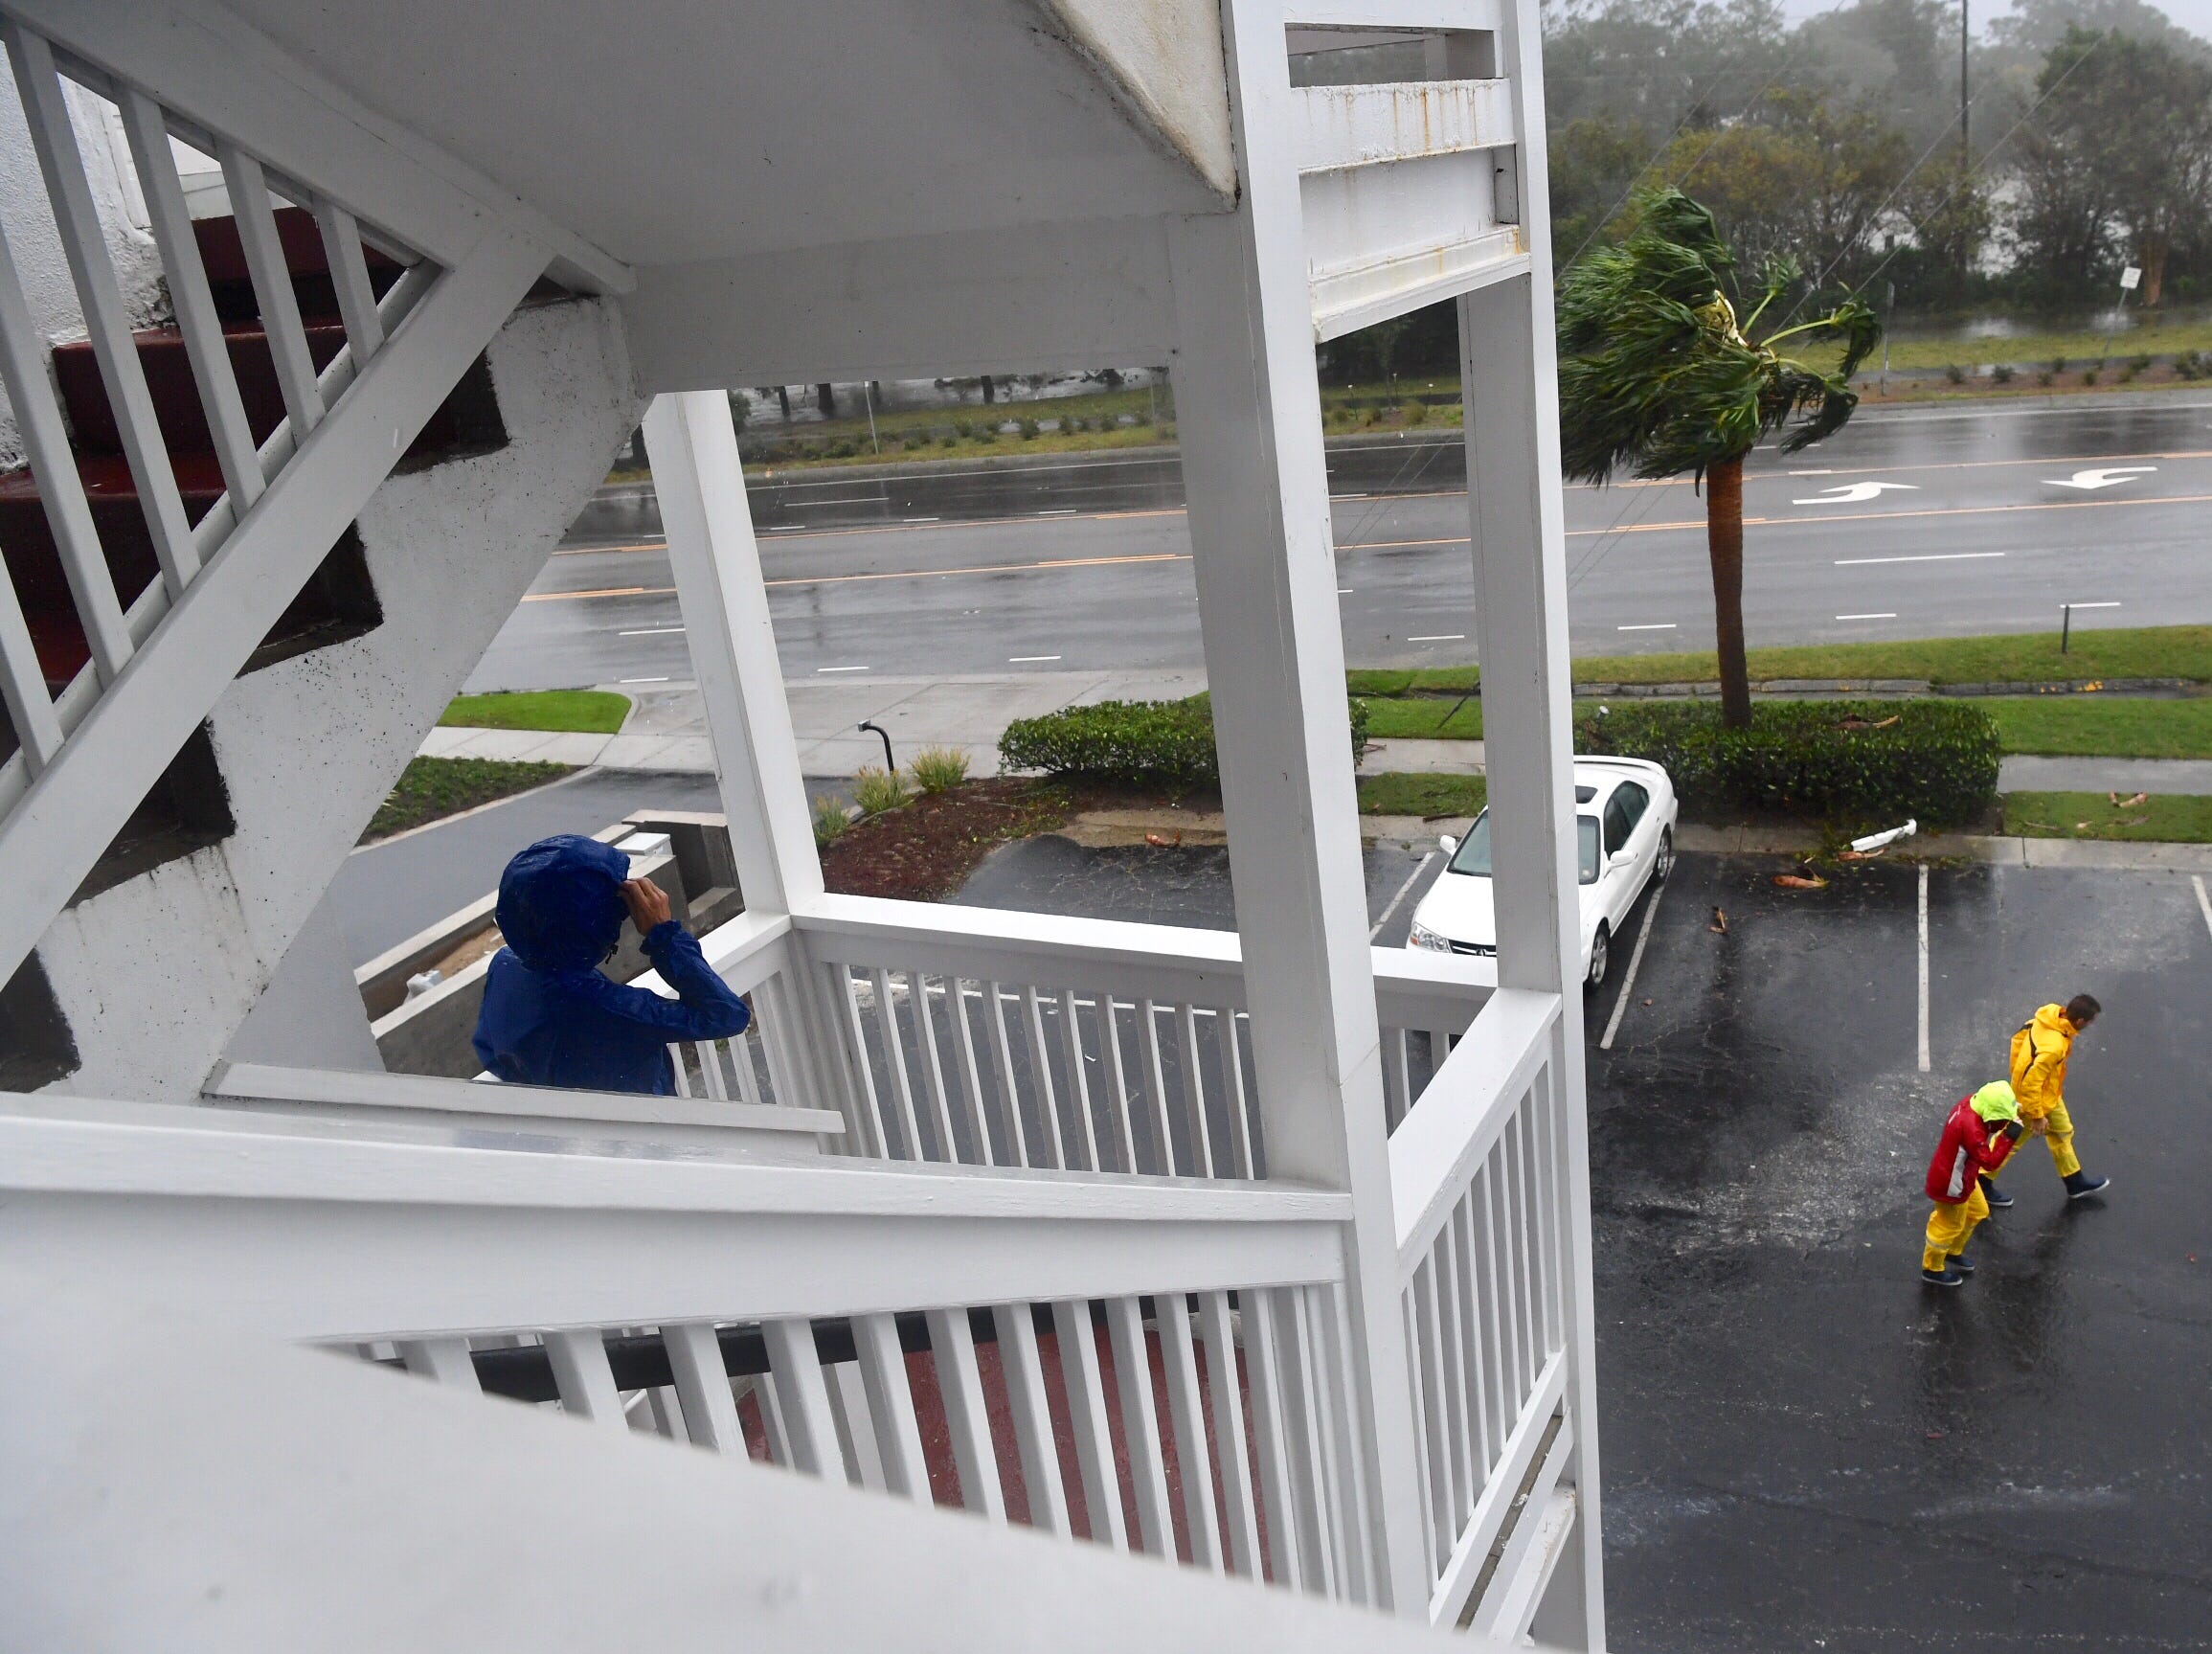 Mary Florian of Wilmington, NC, watches Hurricane Florence pass through while a couple walks by her residence at Waterway Lodge Friday, Sept. 14, 2018.